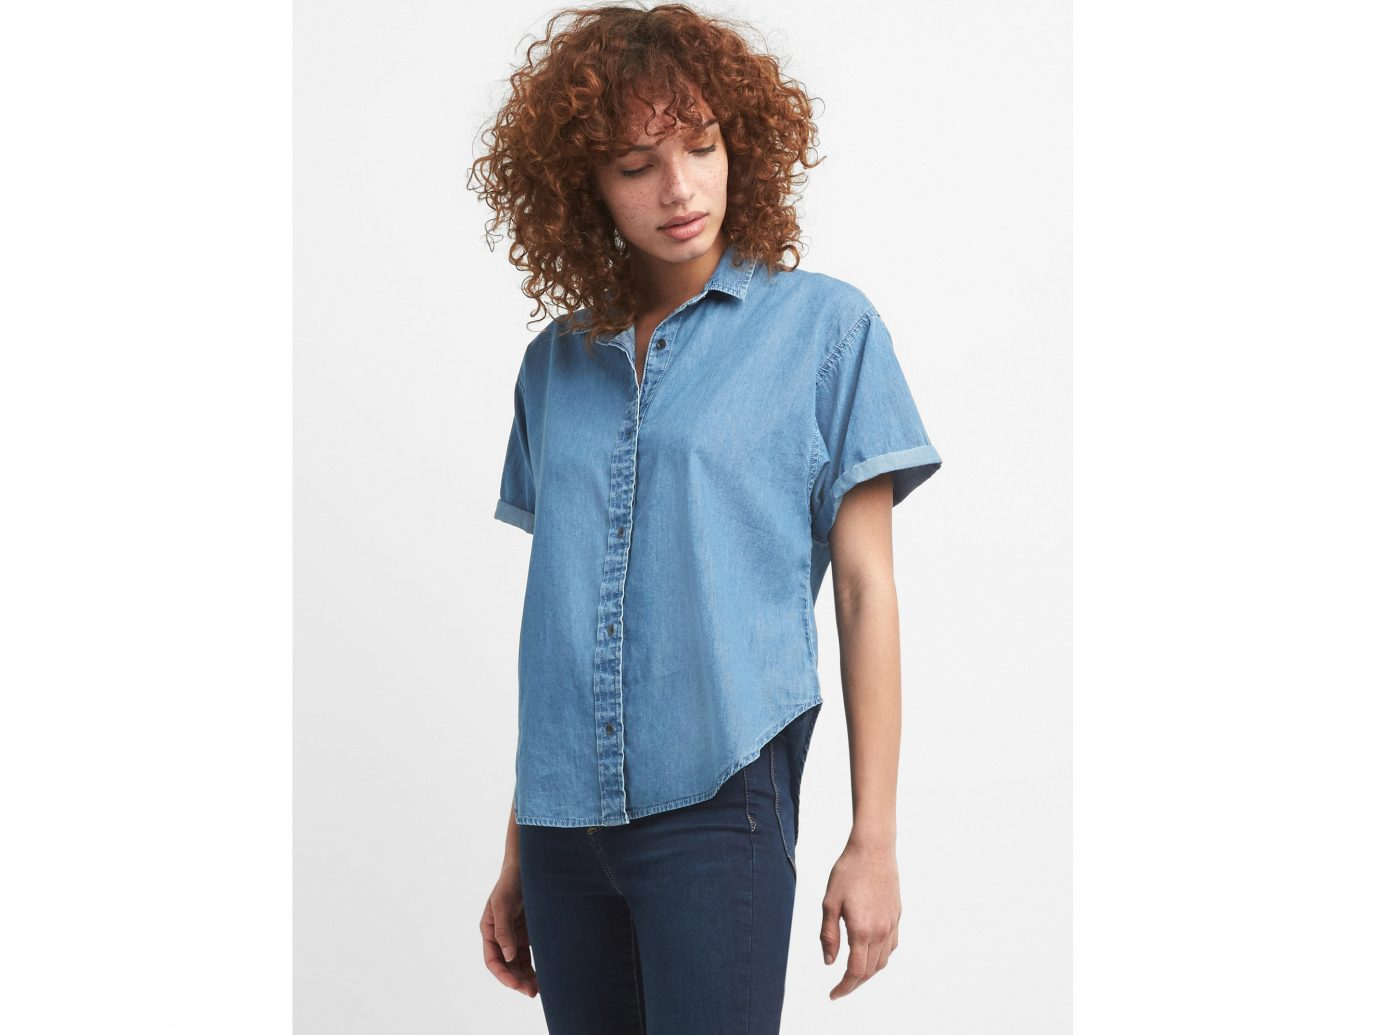 City Palm Springs Style + Design Travel Shop person clothing sleeve standing denim shoulder jeans neck button blouse shirt t shirt posing